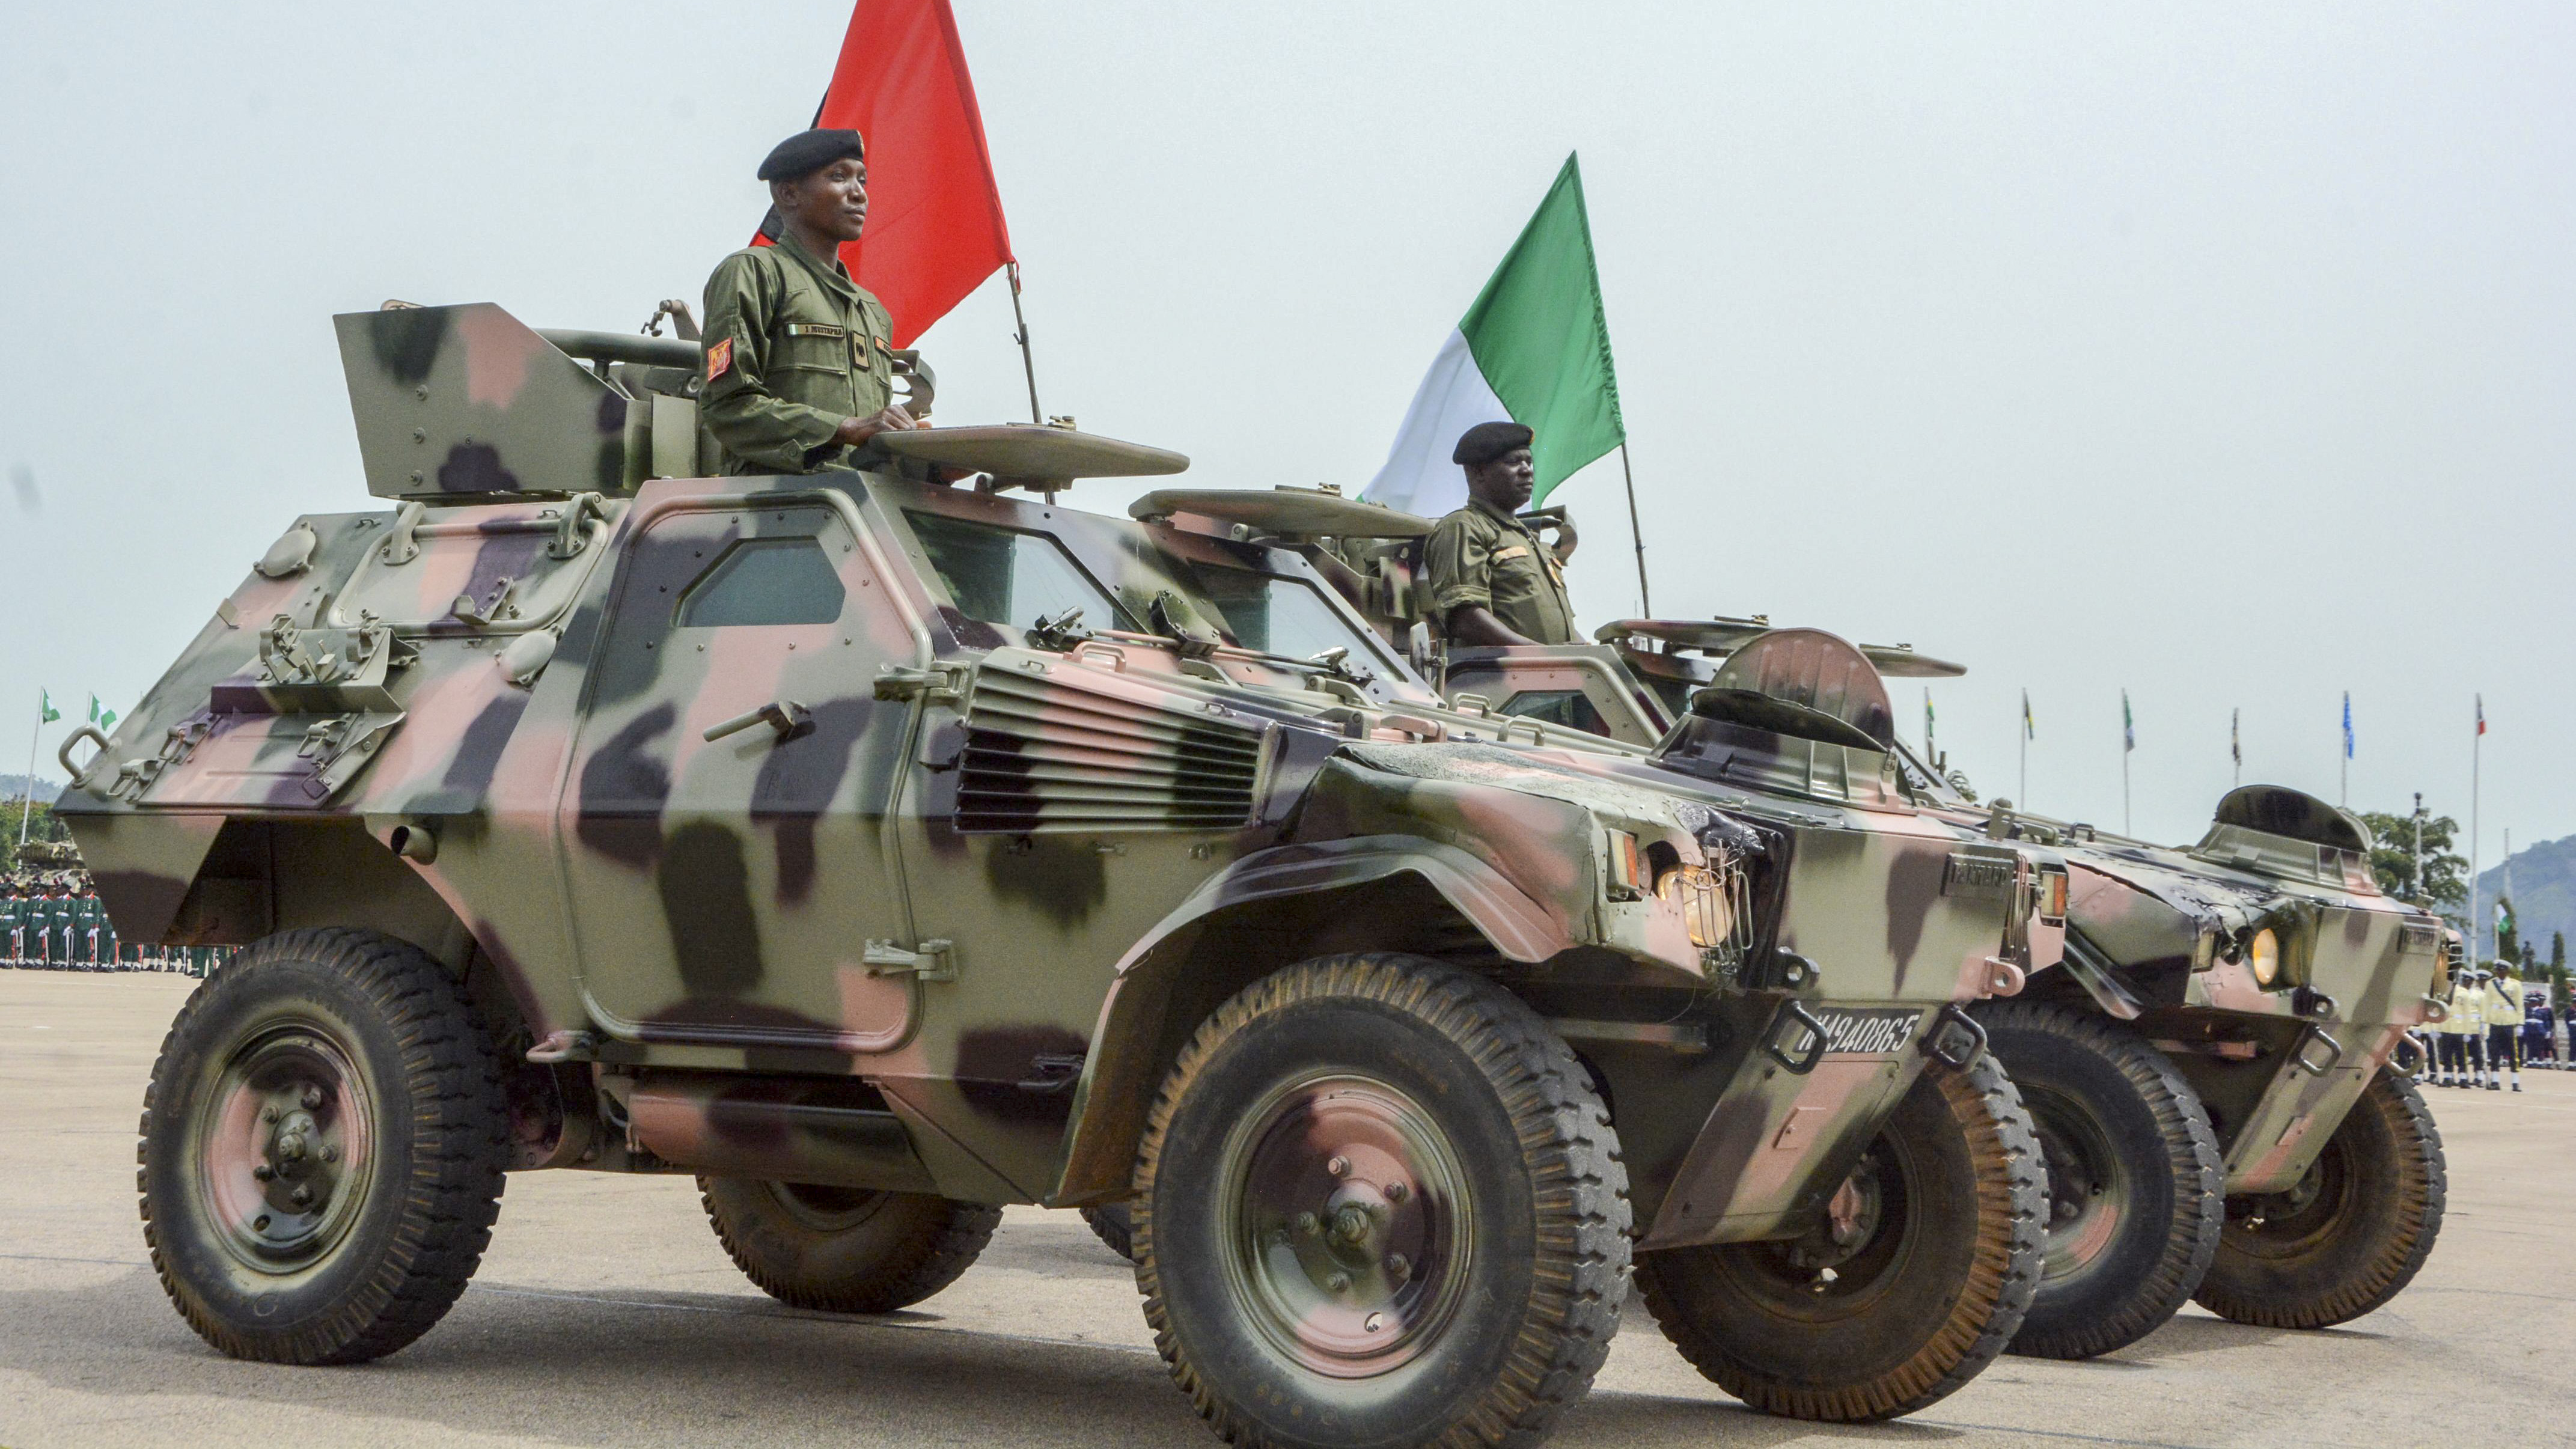 Nigerian soldiers stand on armoured vehicles during a parade marking the country's 58th anniversary of independence, on October 1, 2018, on Eagle Square in Abuja. (SODIQ ADELAKUN/AFP/Getty Images)